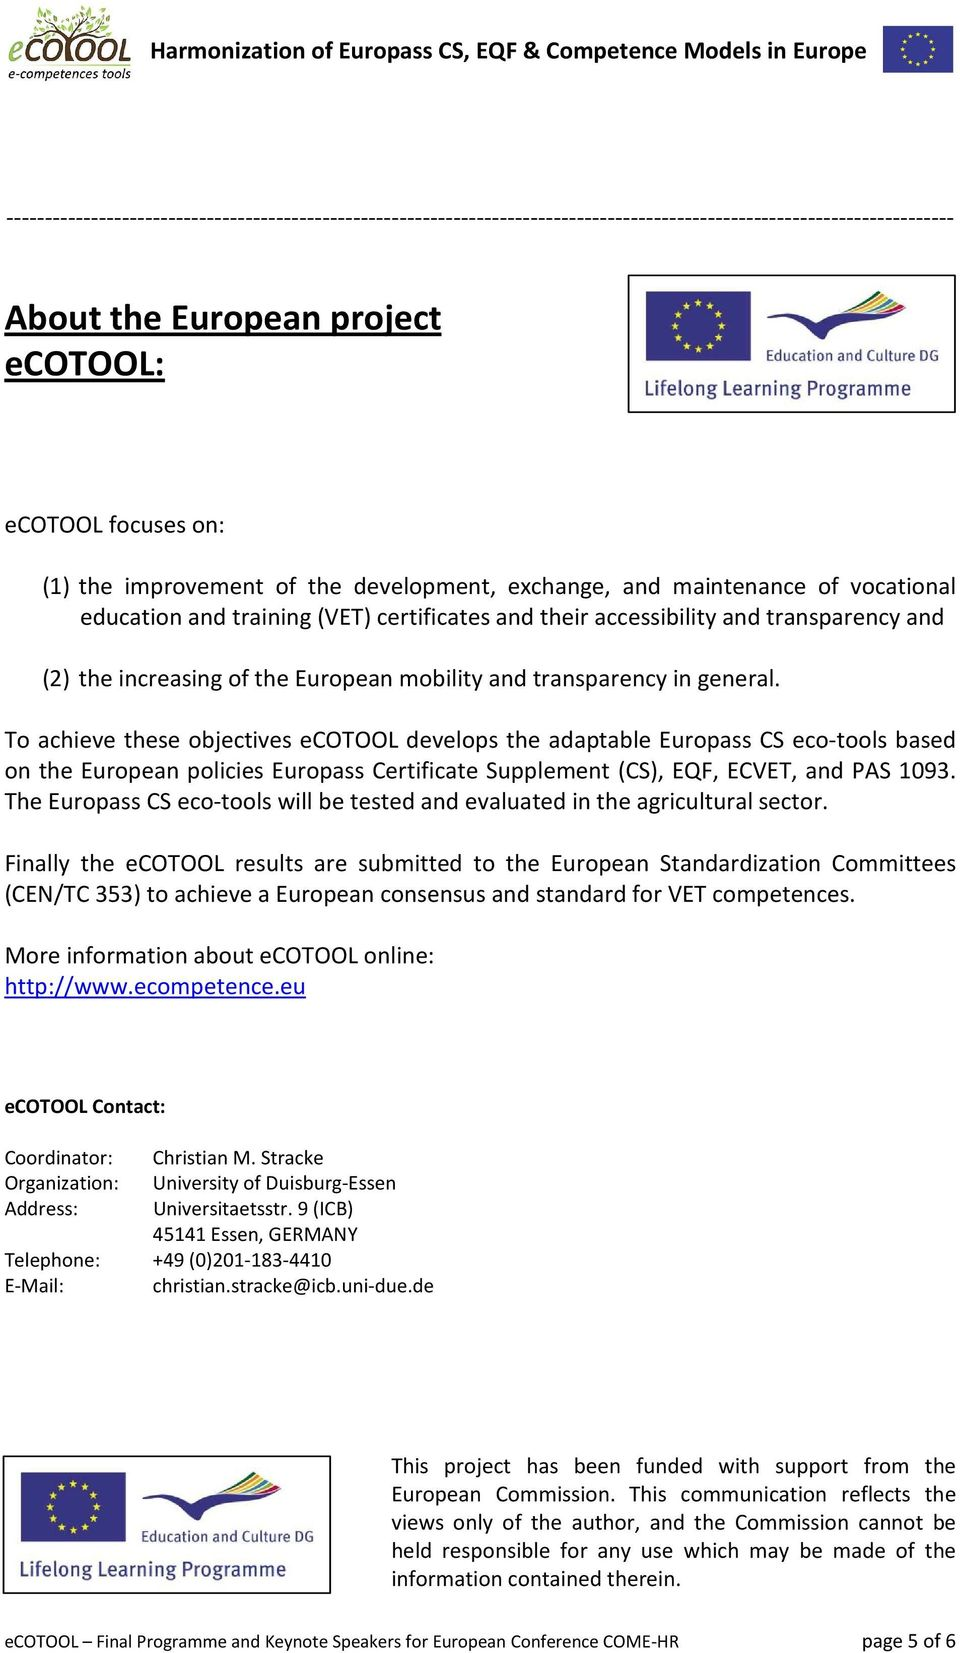 transparency in general. To achieve these objectives ecotool develops the adaptable Europass CS eco-tools based on the European policies Europass Certificate Supplement (CS), EQF, ECVET, and PAS 1093.